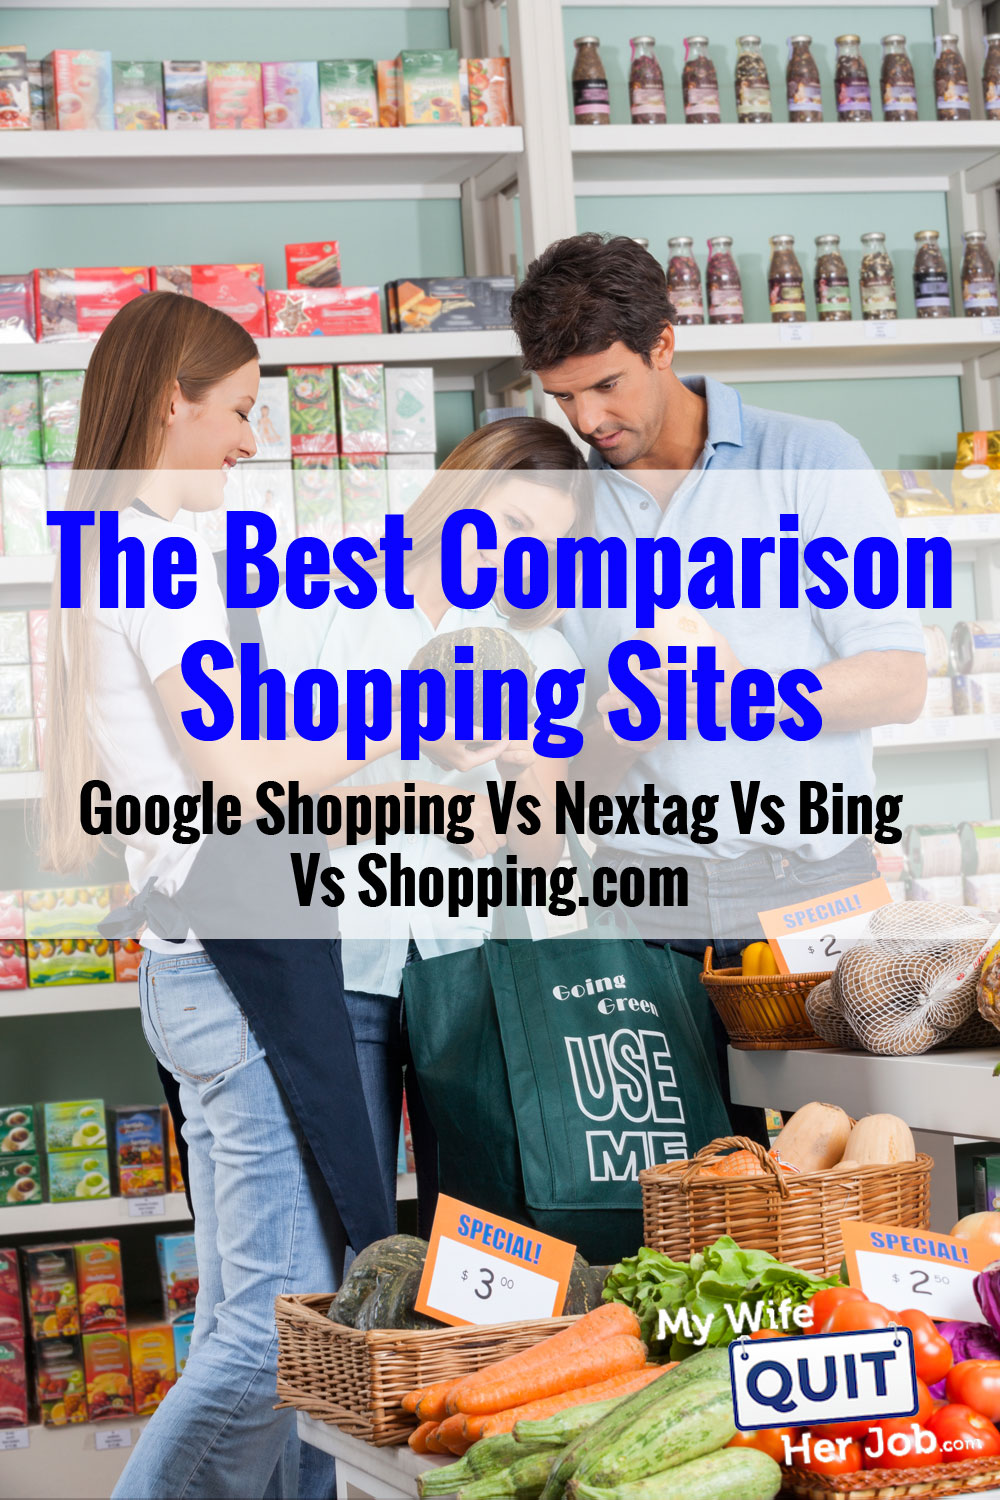 Best Comparison Shopping Sites - Google Shopping Vs Nextag Vs Bing Vs Shopping.com